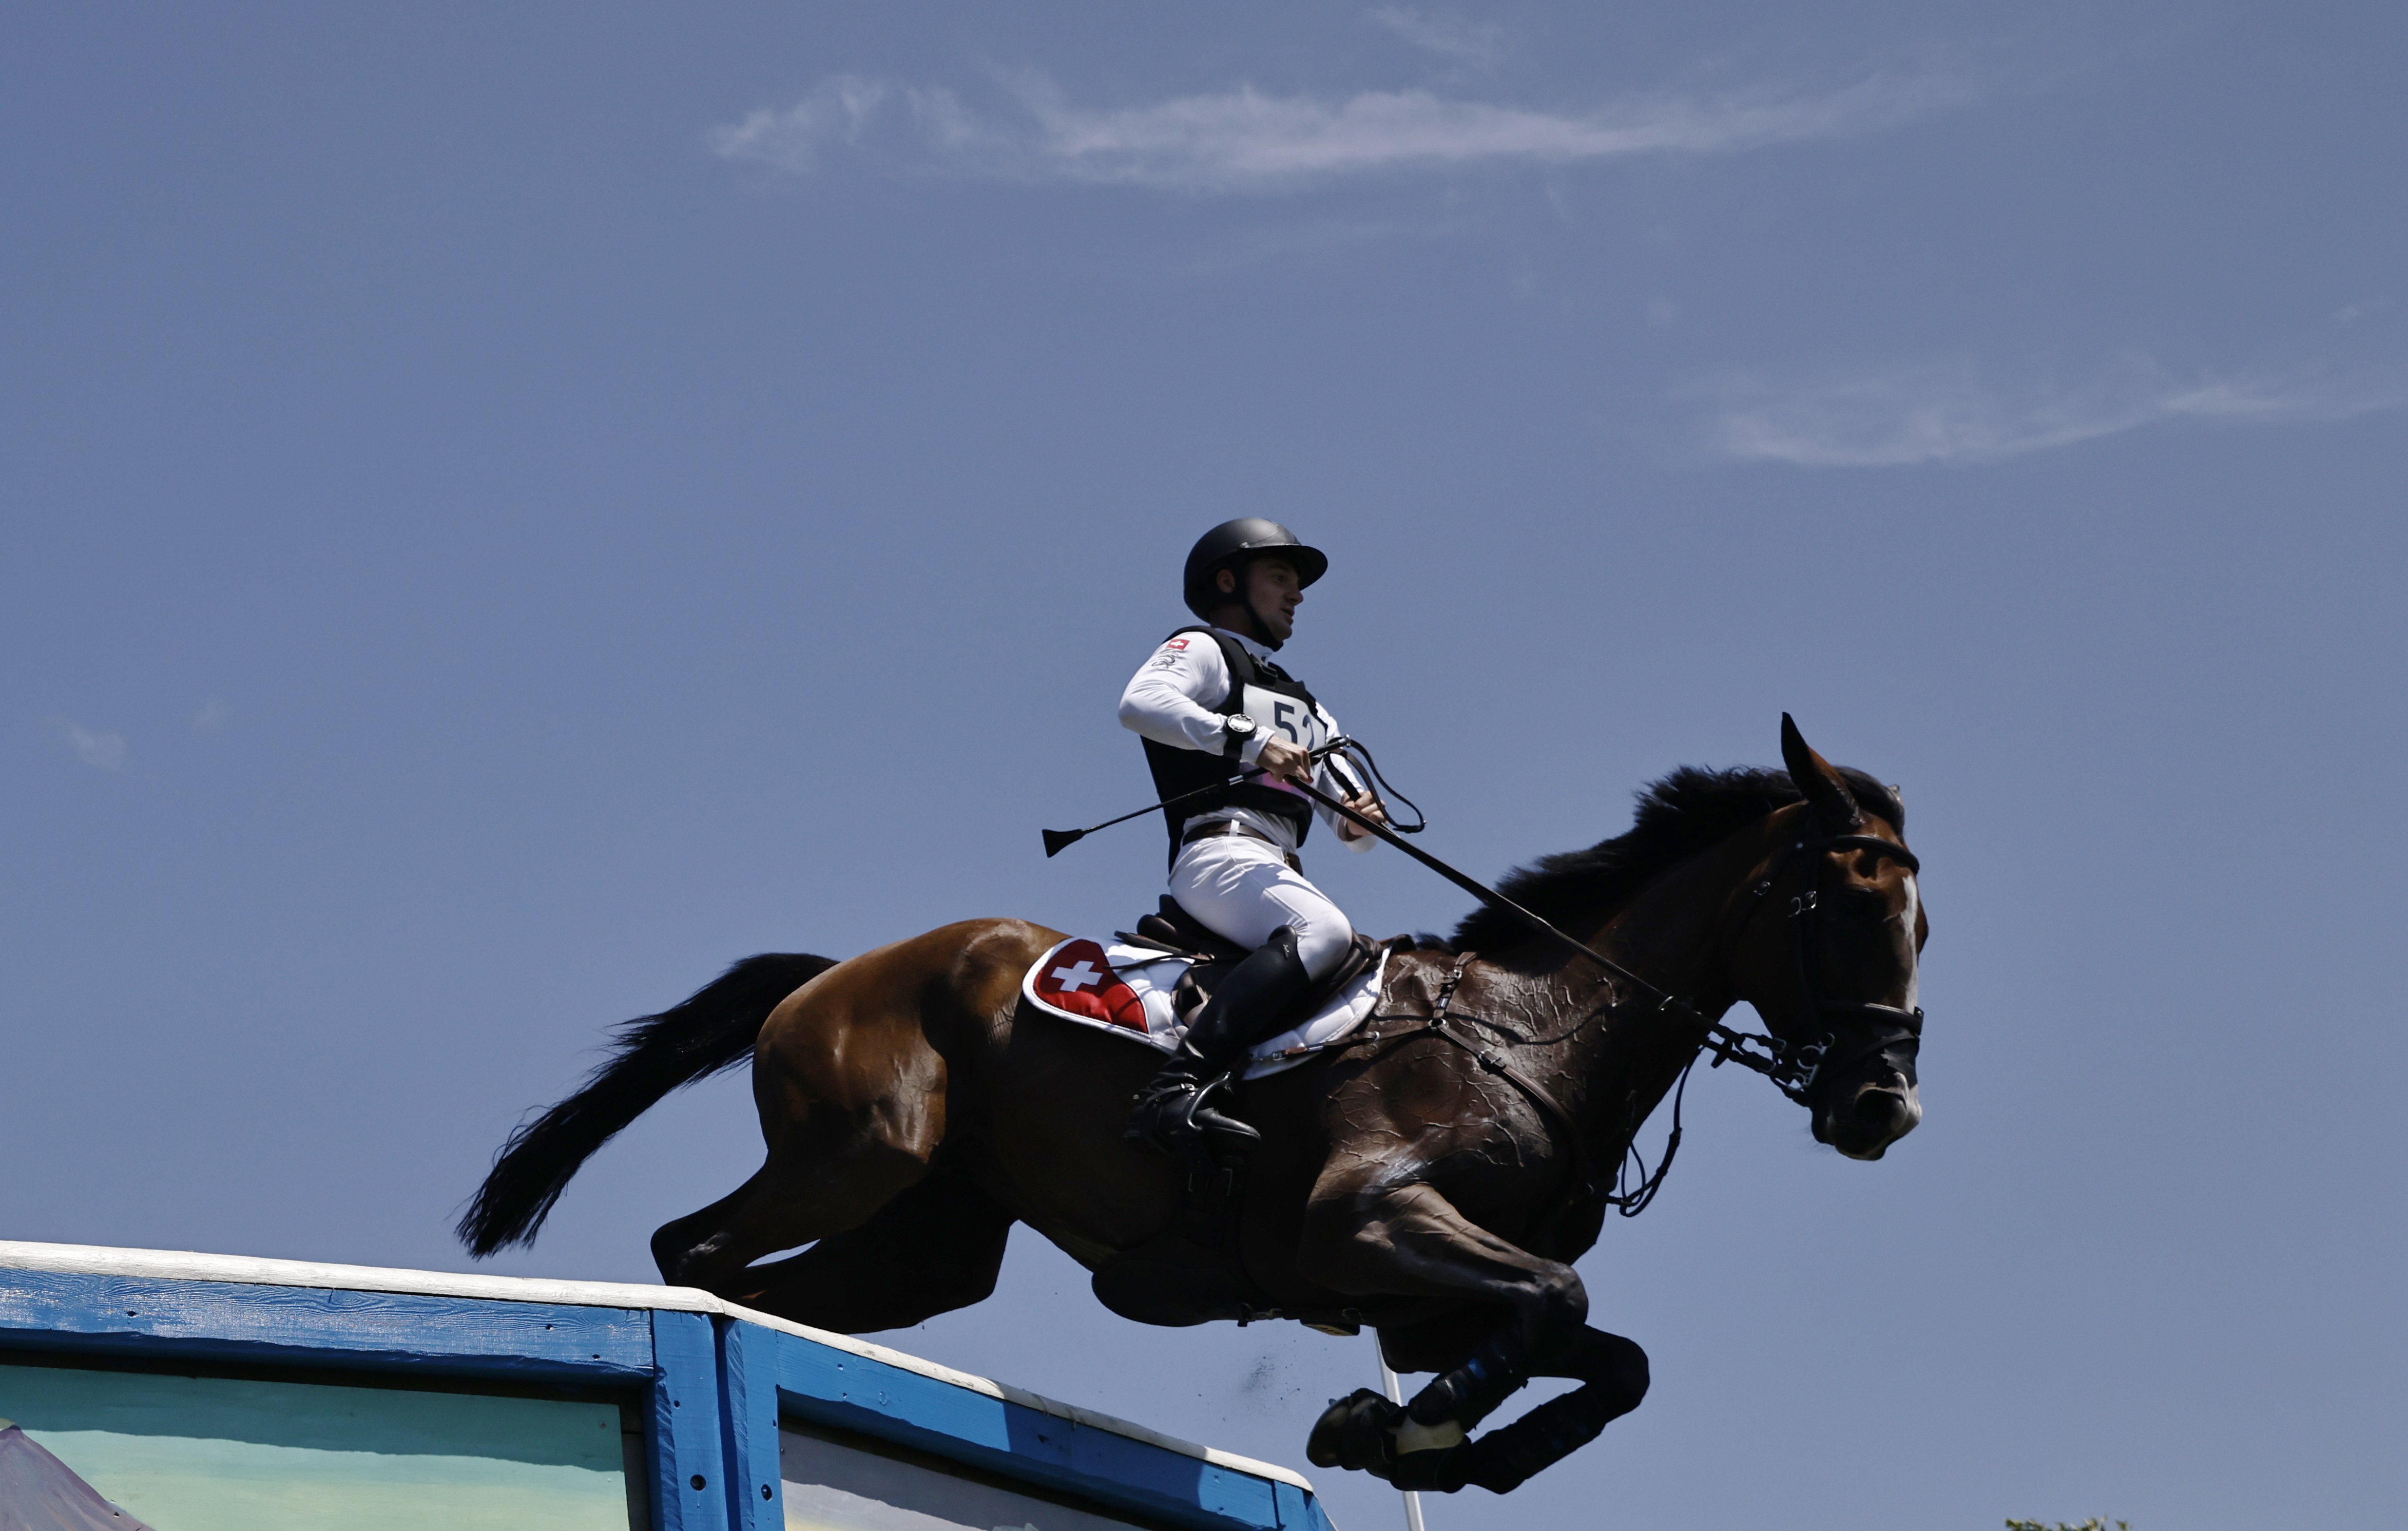 Tokyo 2020 Olympics - Equestrian - Eventing - Cross Country Team - Final - Sea Forest XC Course - Tokyo, Japan - August 1, 2021. Robin Godel of Switzerland on his horse Jet Set compete REUTERS/Alkis Konstantinidis